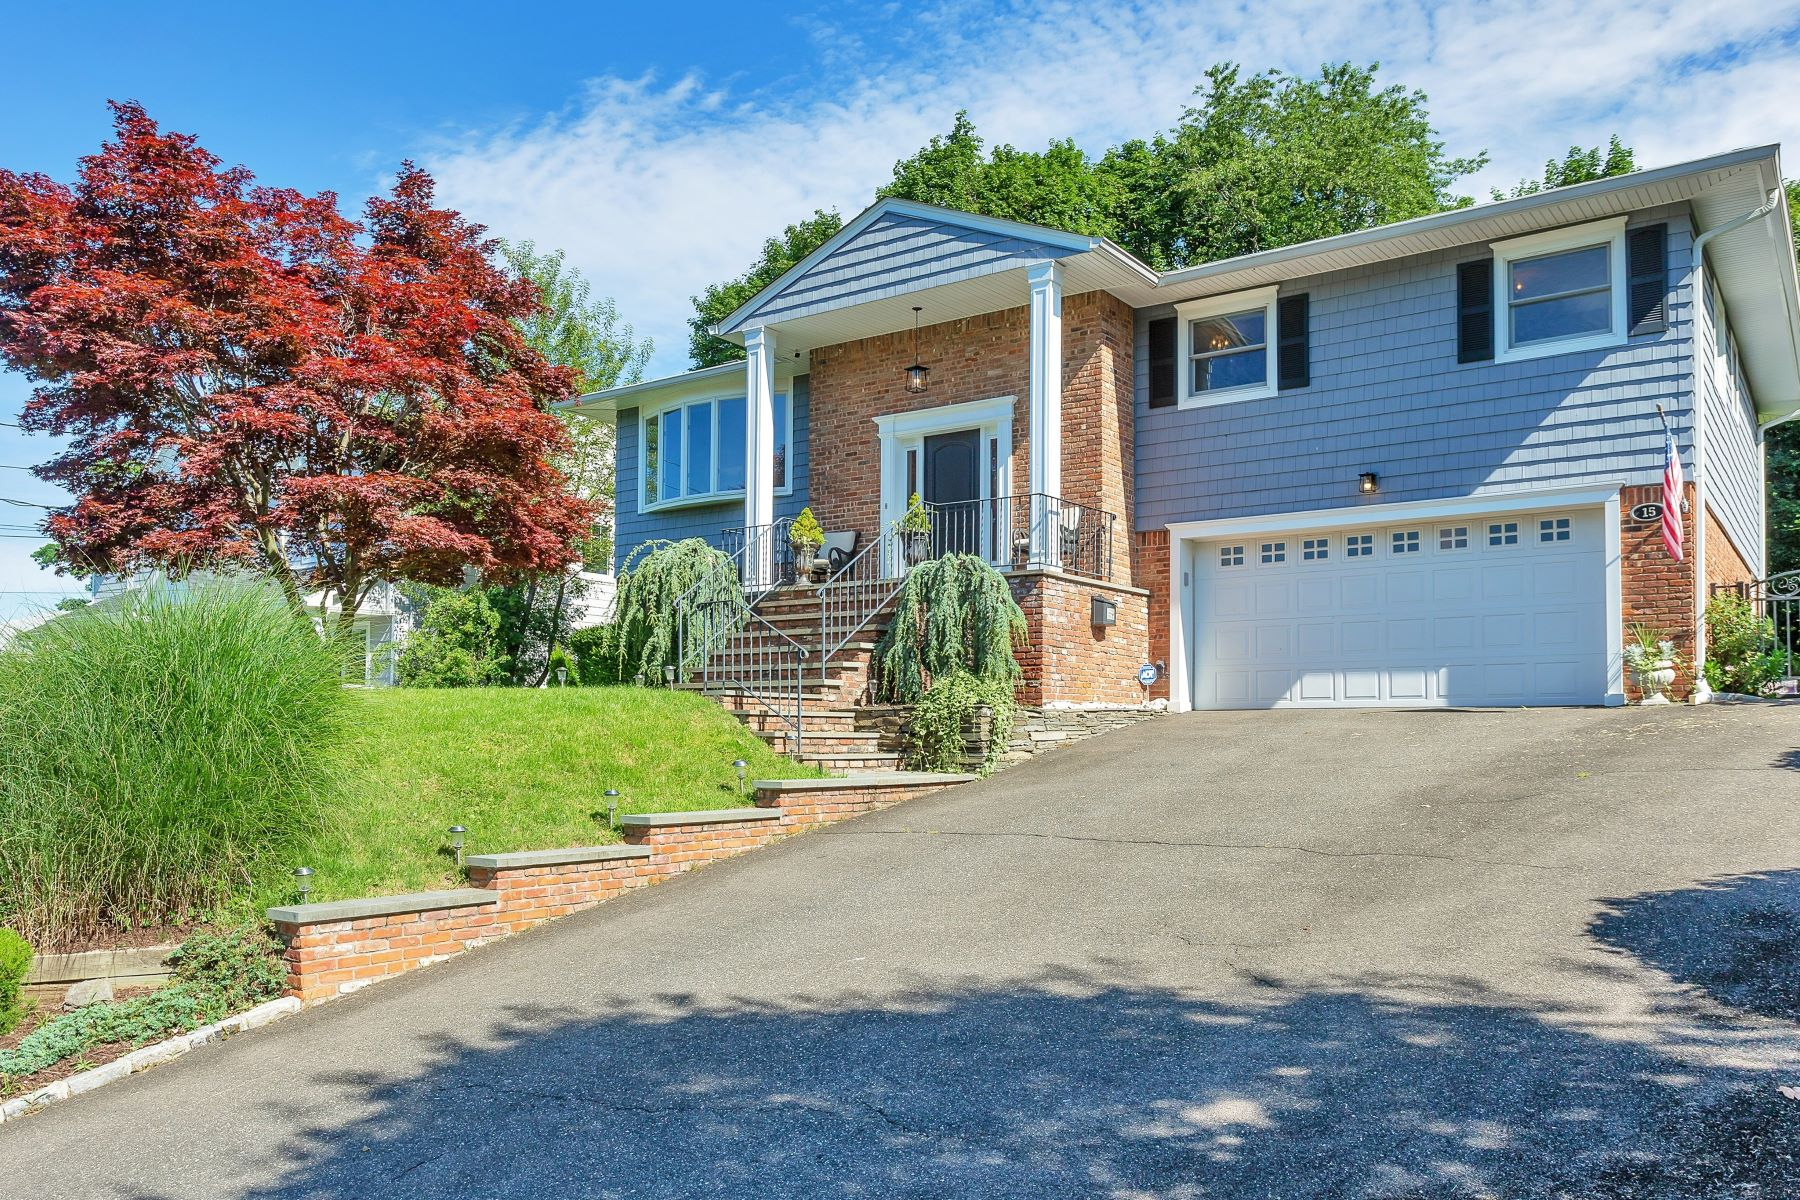 Single Family Homes for Sale at Port Washington 15 Capi Ln Port Washington, New York 11050 United States